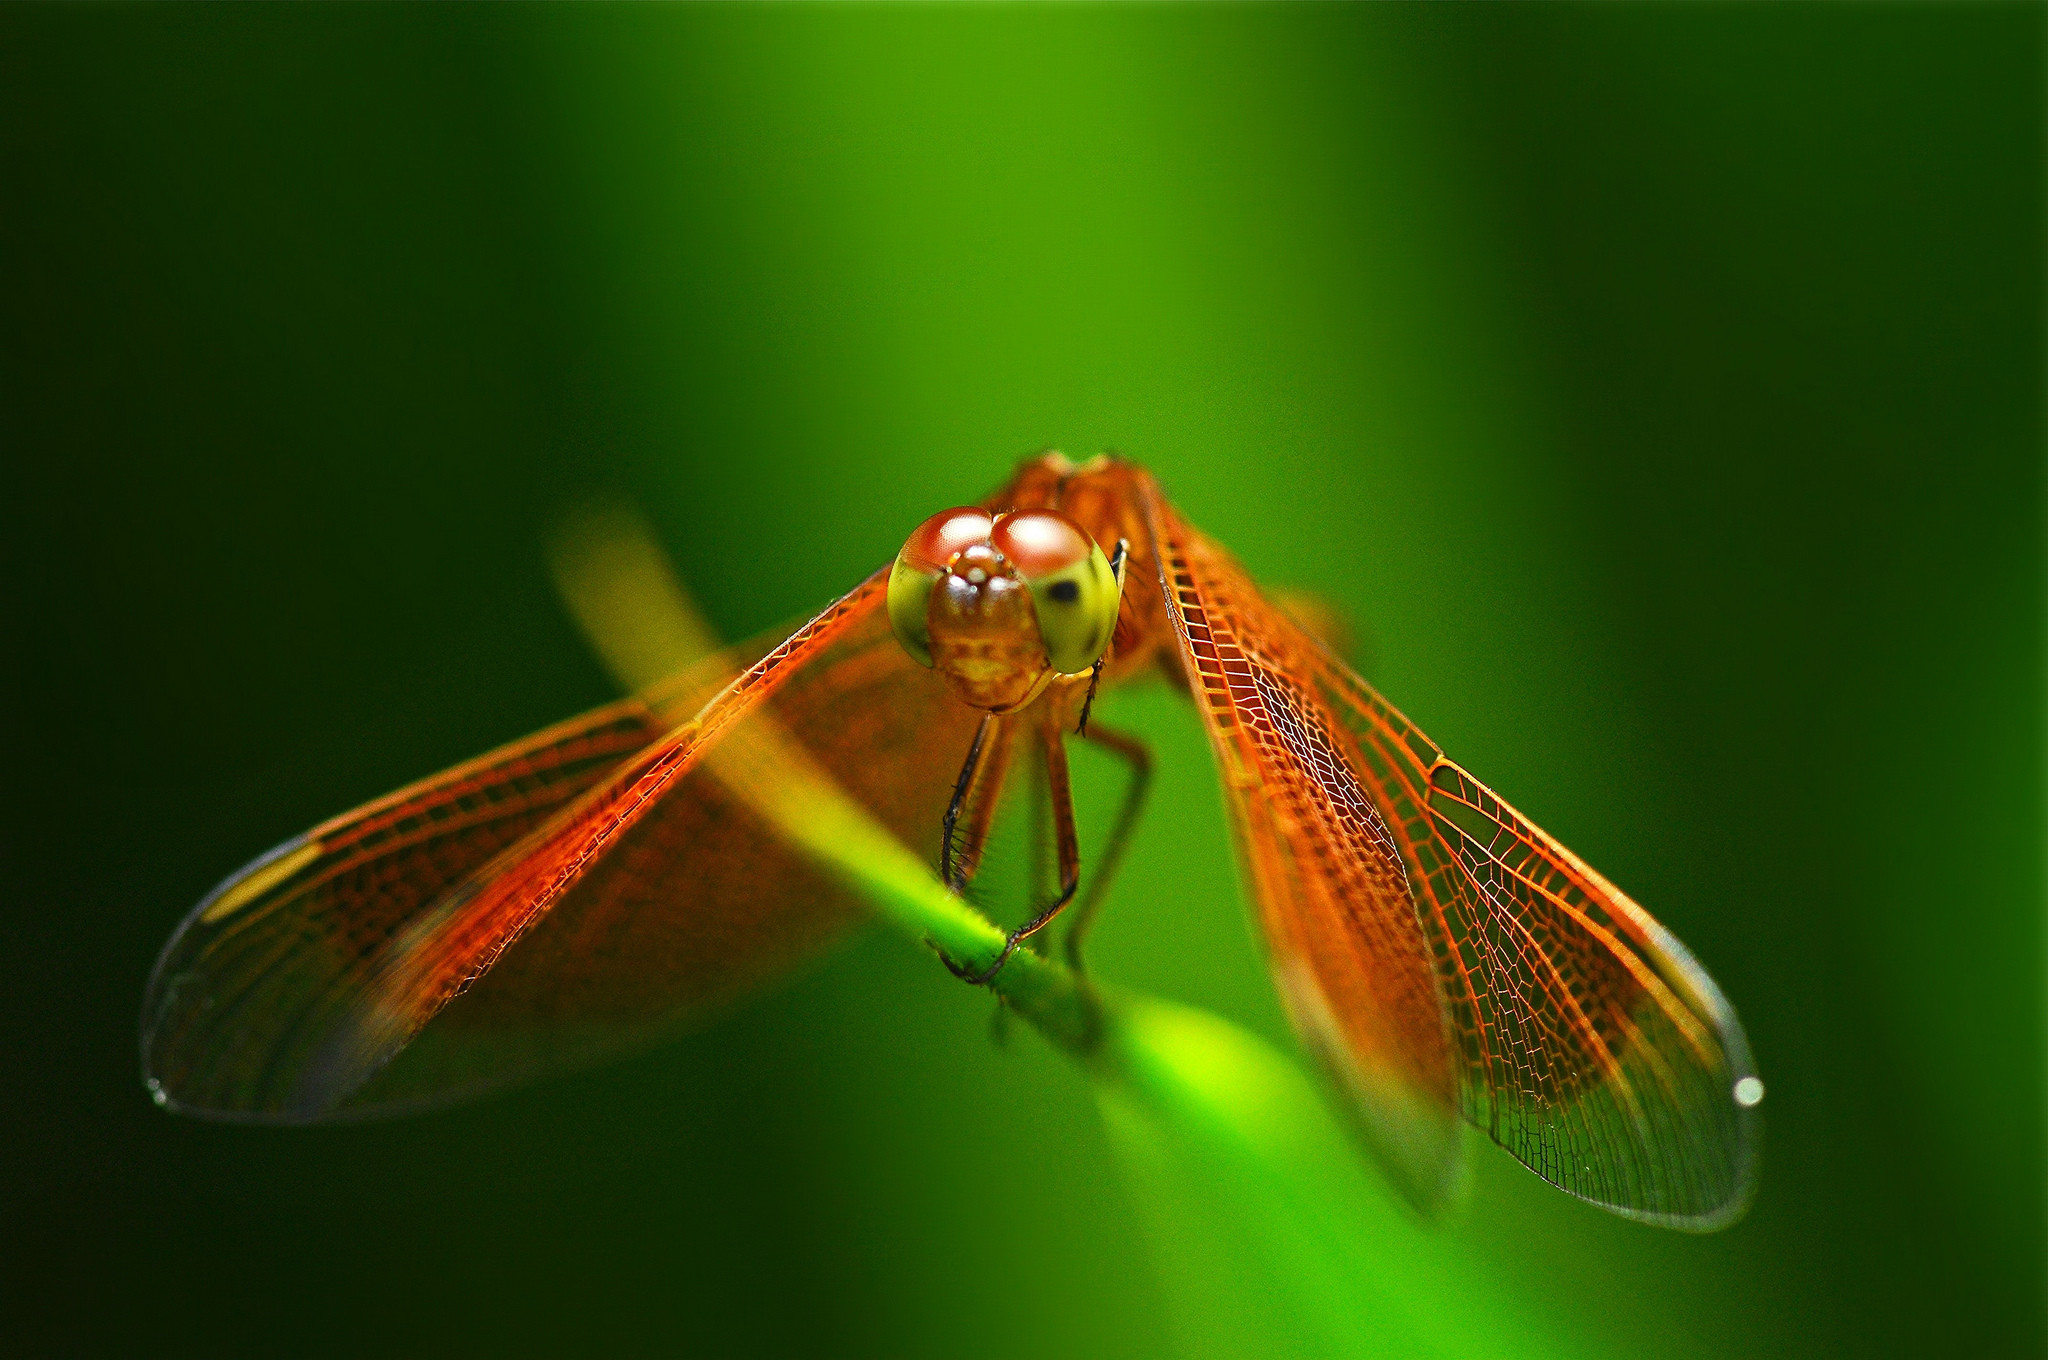 Insects Dragonfly Bug Macro Photo Hd Insects for HD High